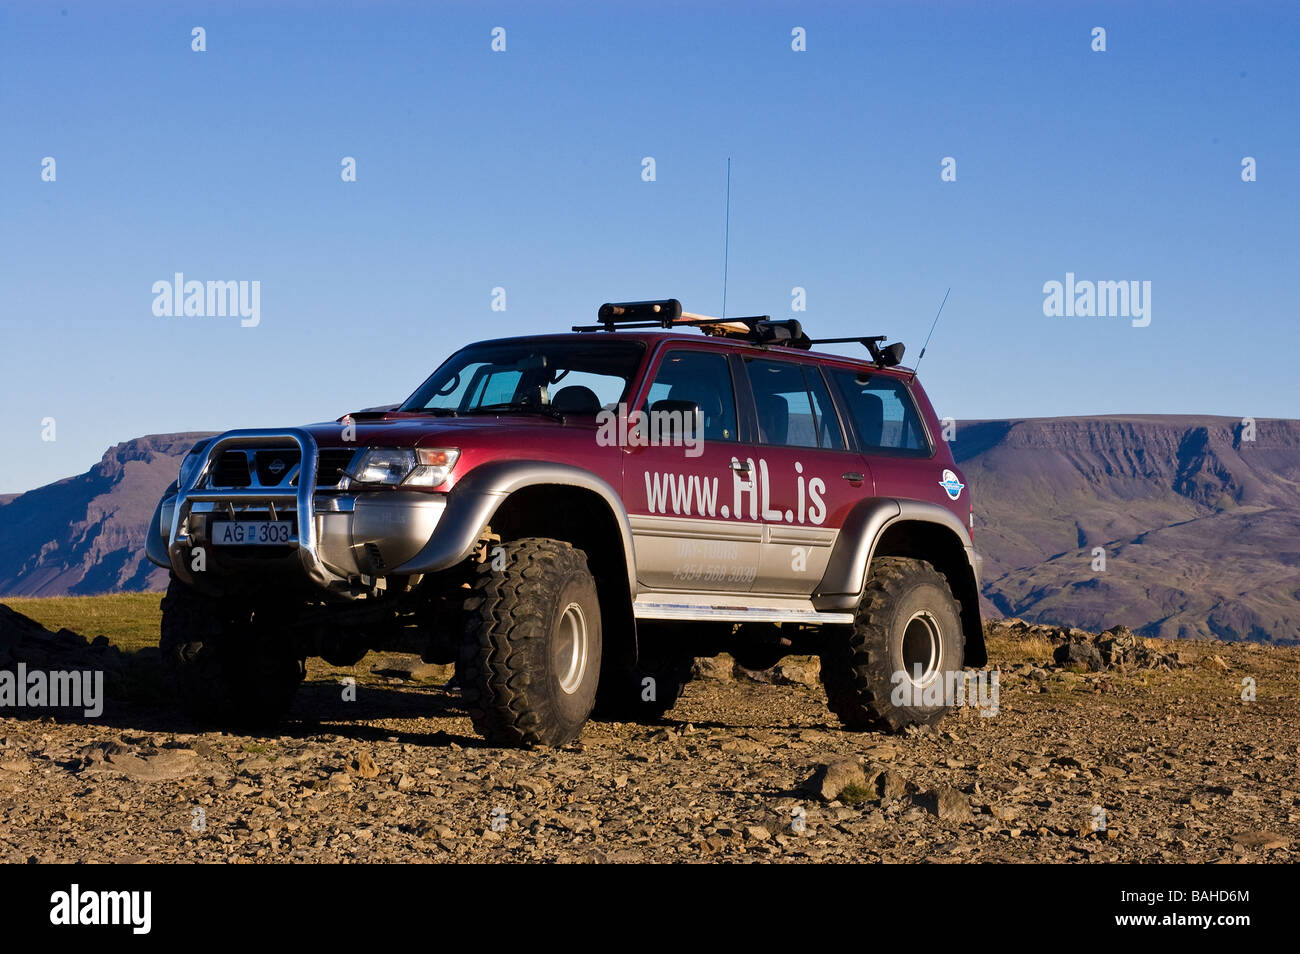 Super Jeep on hilltop in Iceland Stock Photo